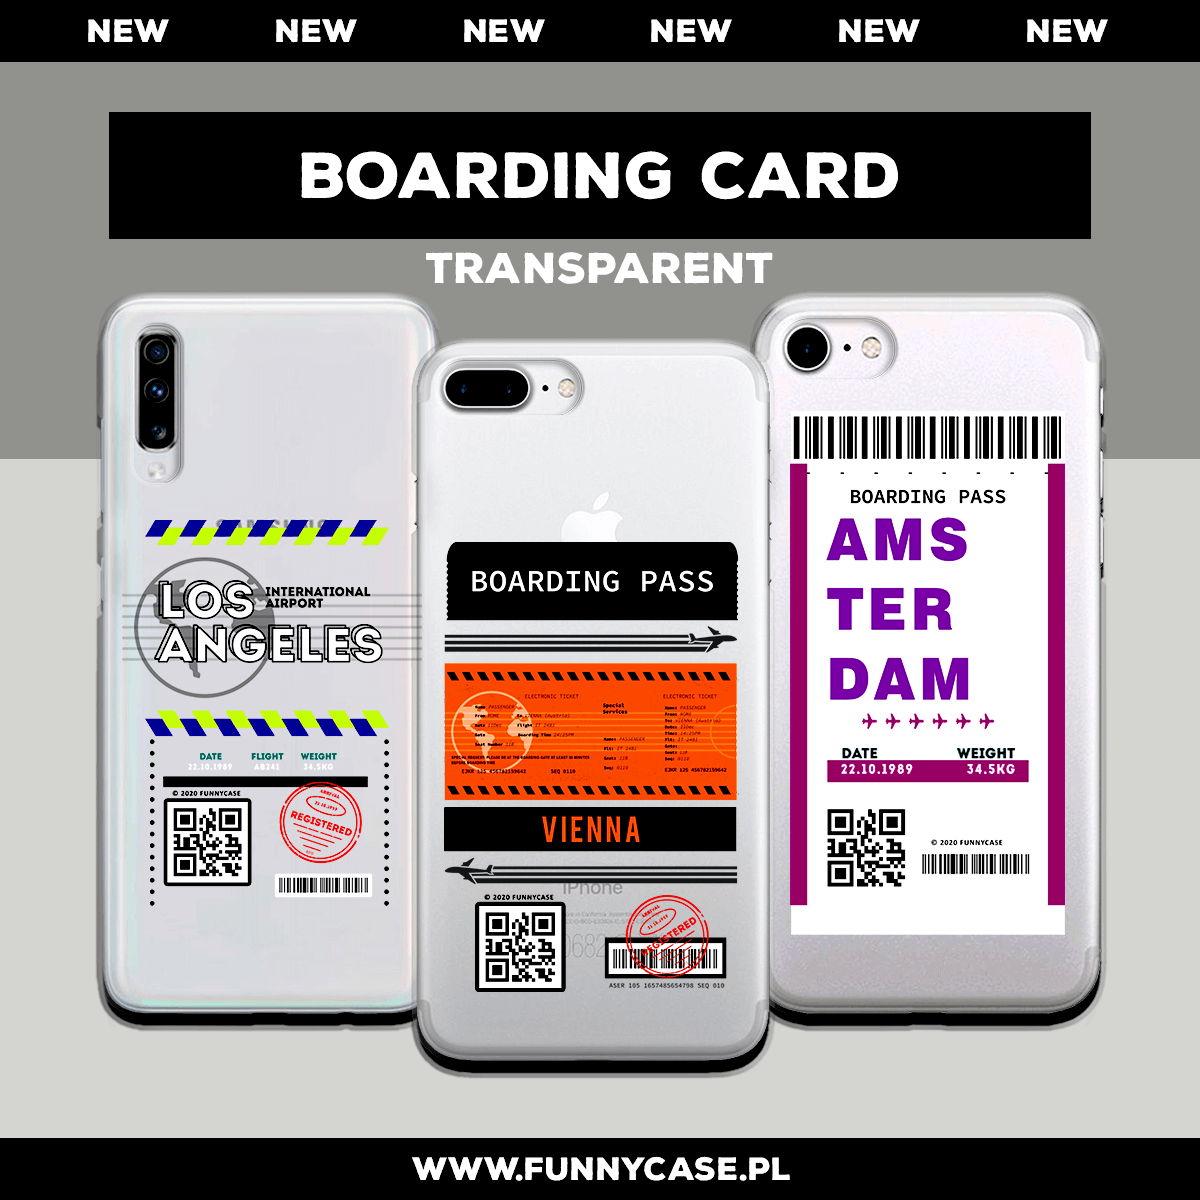 Boarding Card Transparent